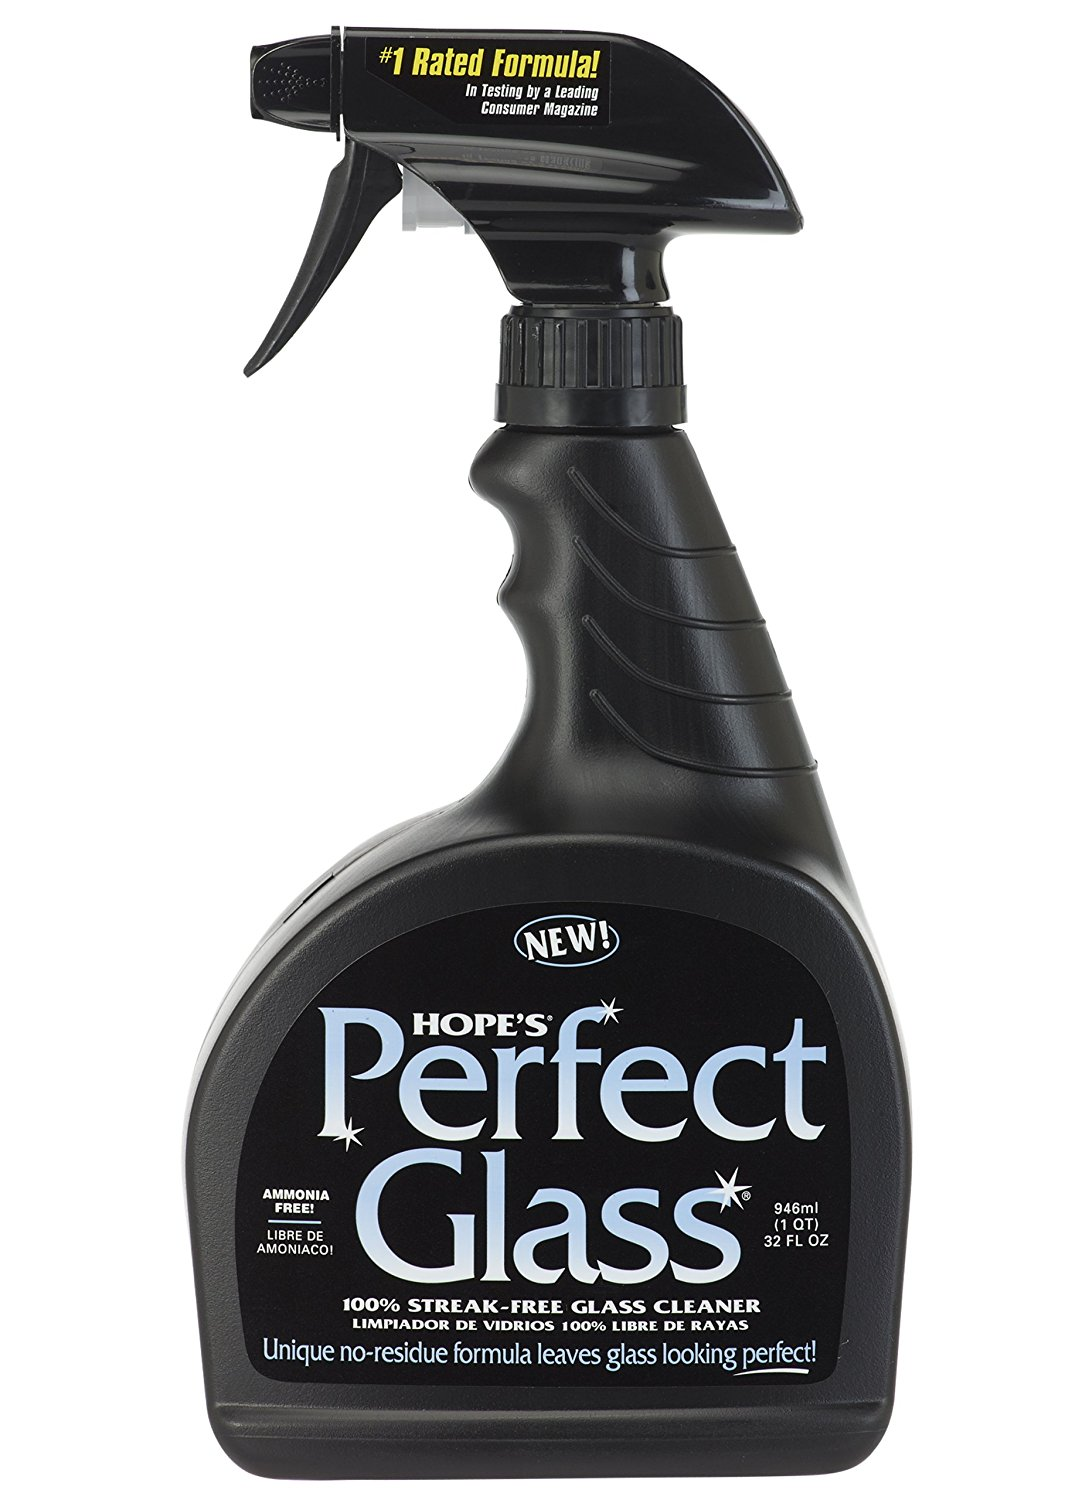 Hope's Perfect Glass Multi-Surface Cleaner